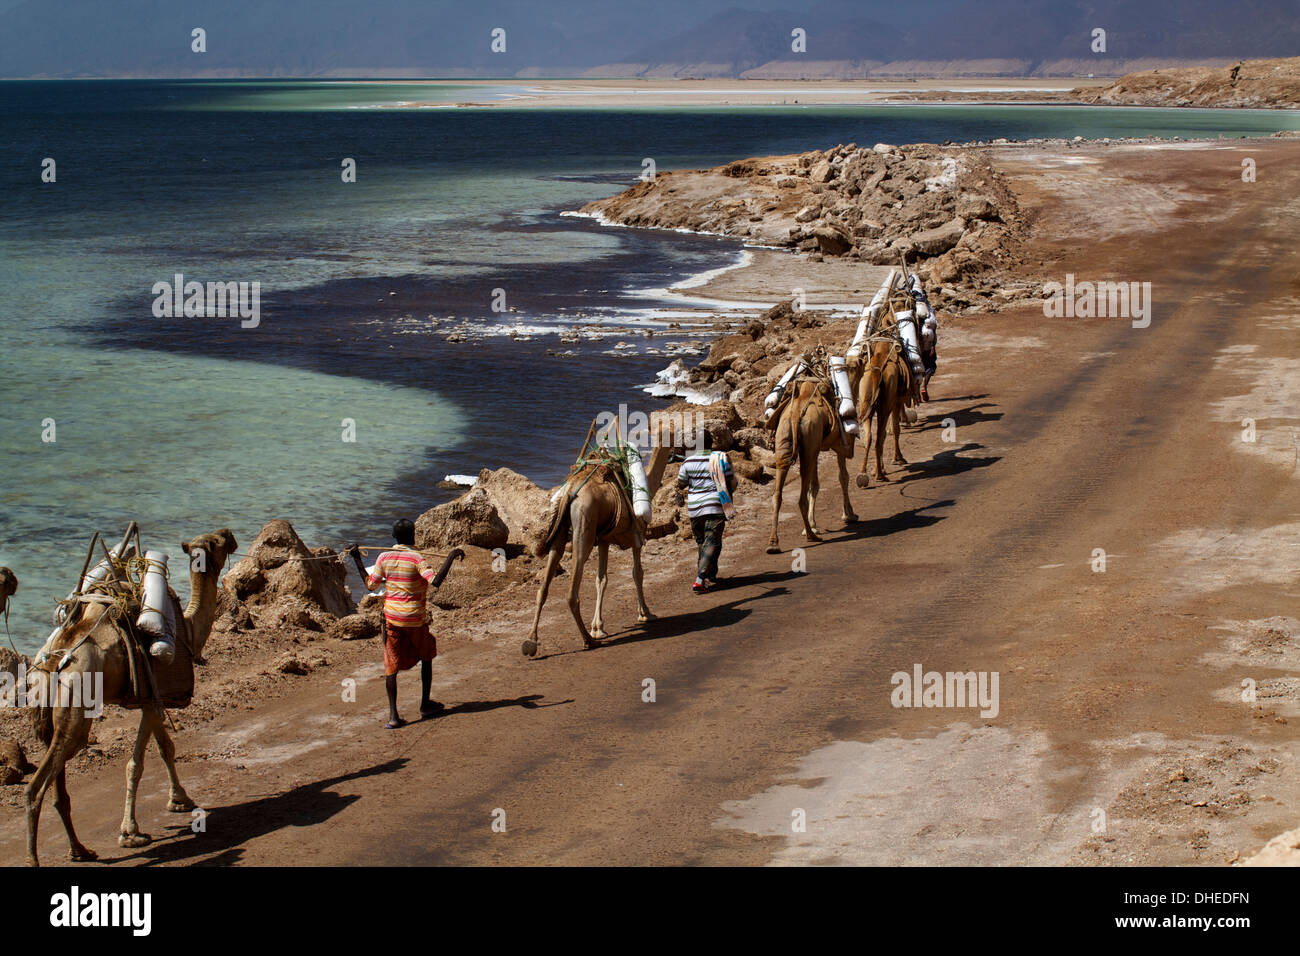 Salt caravan in Djibouti, going from Assal Lake to Ethiopian mountains, Djibouti, Africa - Stock Image